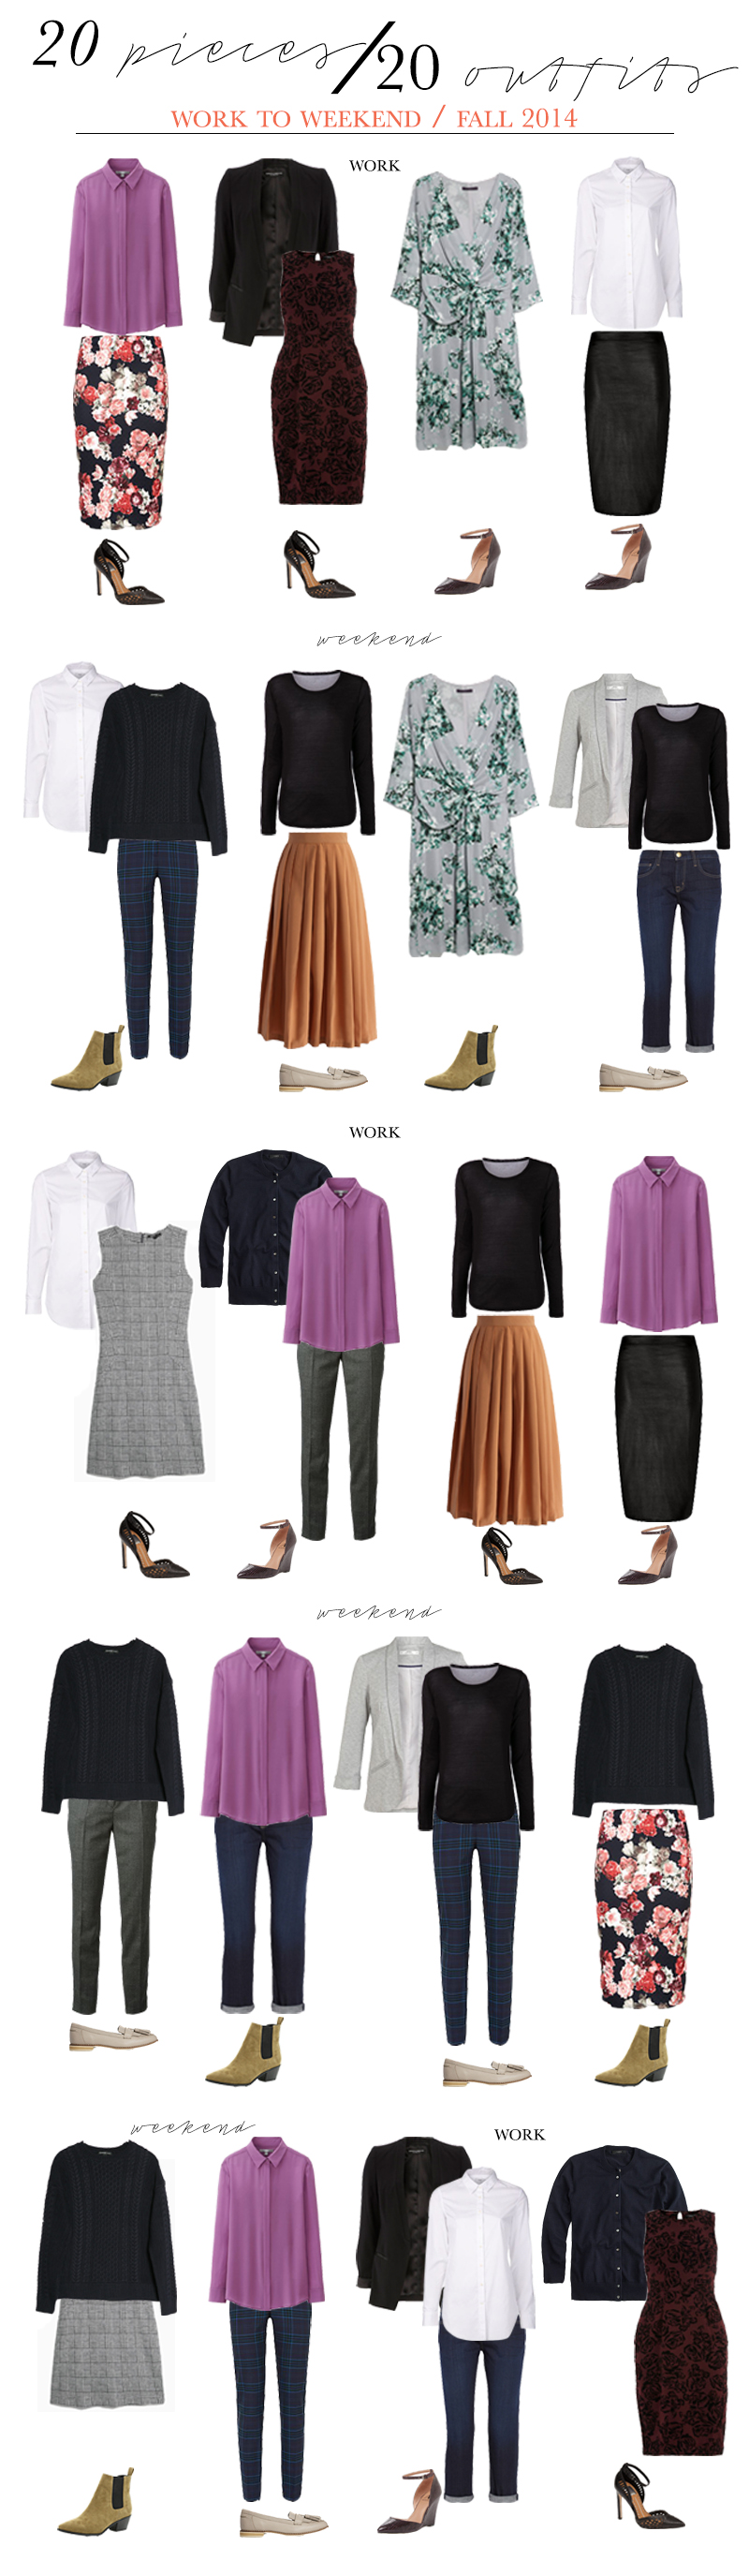 20pieces-20outfits-workweekend